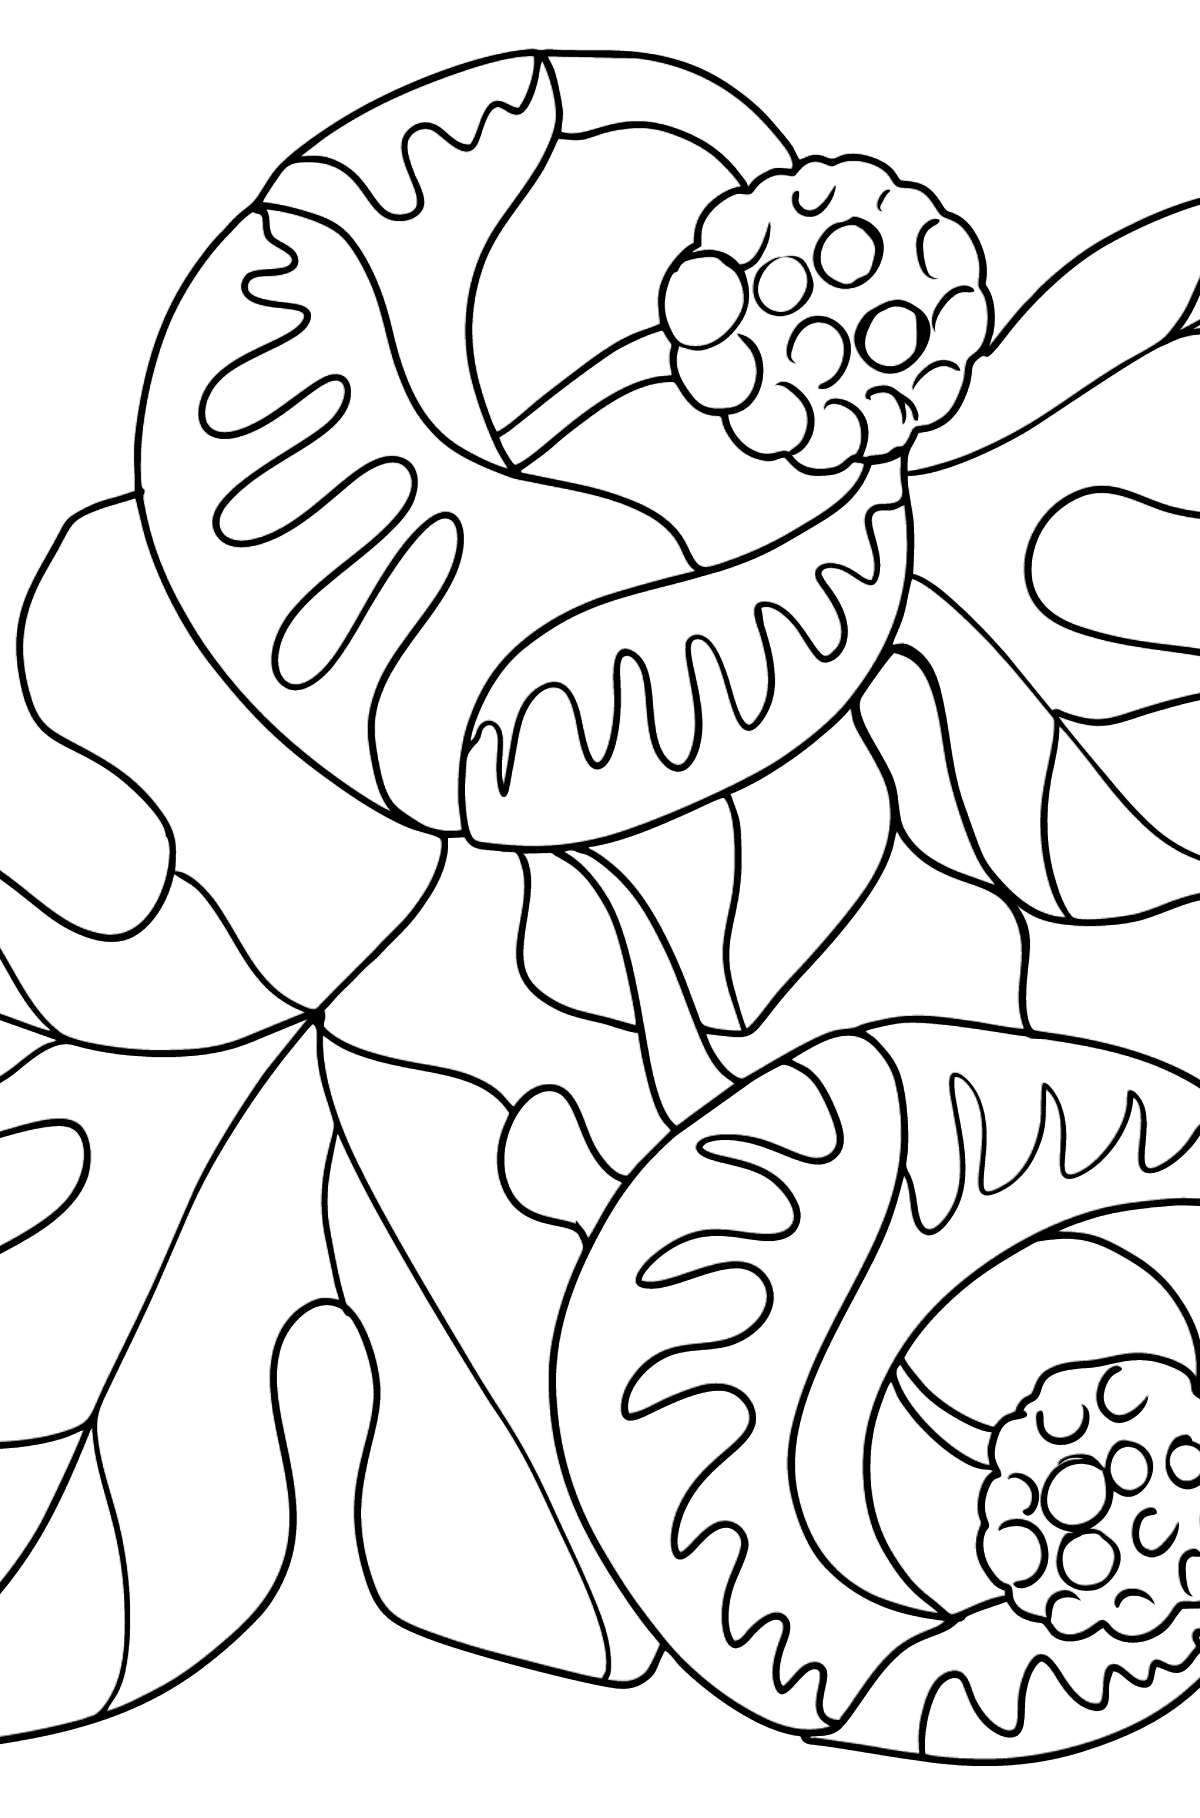 Fantastic flowers Coloring Page - Coloring Pages for Kids